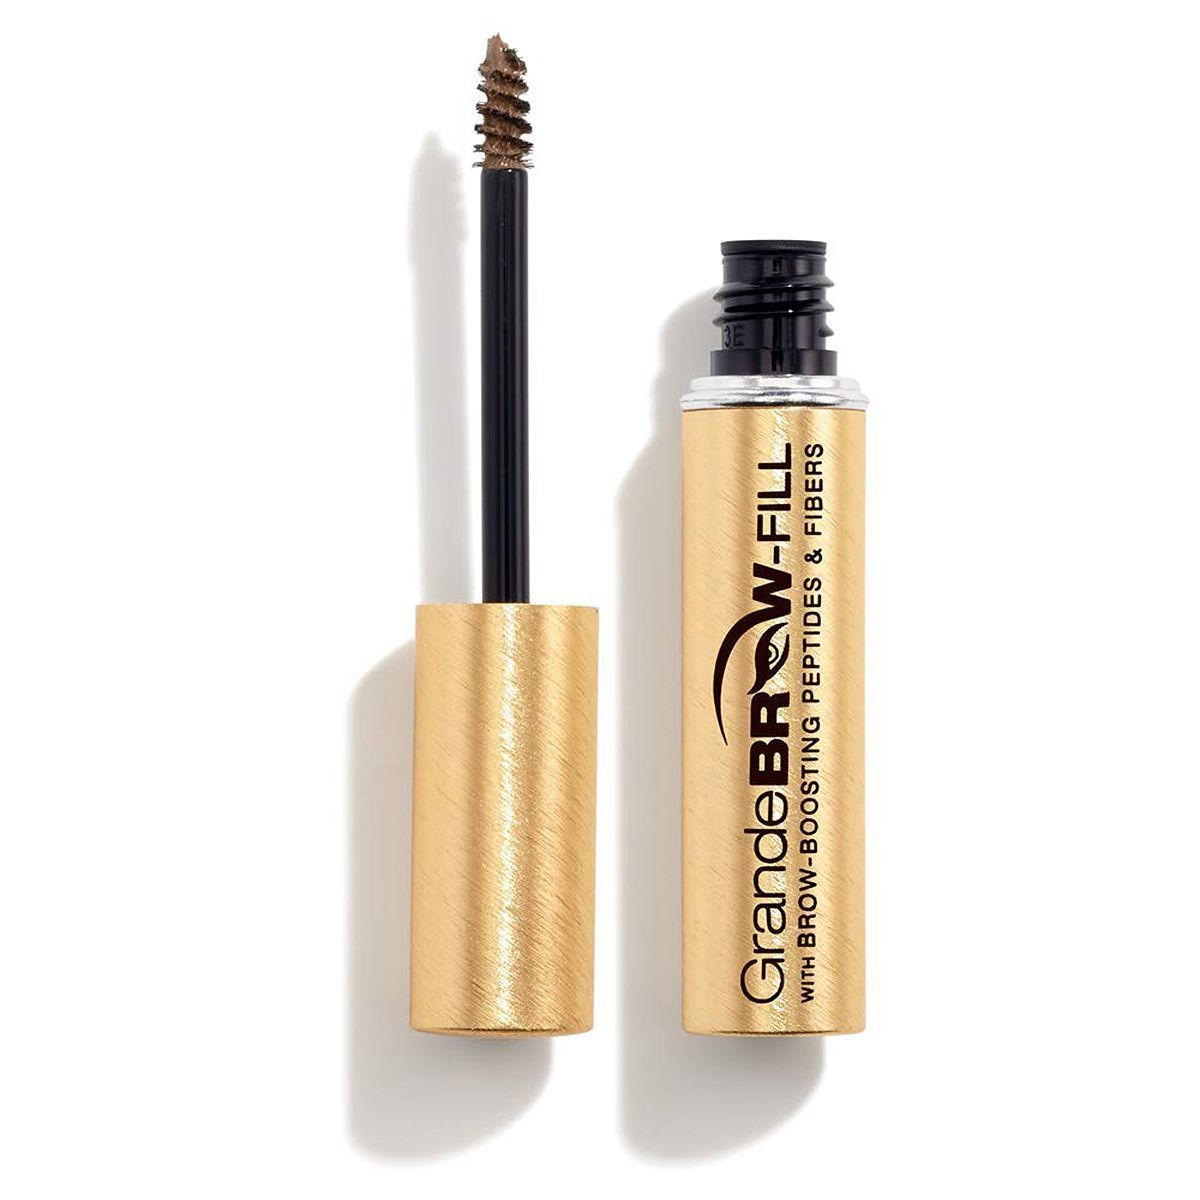 Ditch the Brow Pencils — This Brush-On Gel Is All You Need #naturalbrows We feel so lucky to be alive in a time when full, natural brows are in and thin, over-plucked brows are out. However, we may not be so lucky that our natural brows have exactly the look we want. Maybe they're too sparse or too light, or perhaps they have trouble maintaining their shape. We […] #naturalbrows Ditch the Brow Pencils — This Brush-On Gel Is All You Need #naturalbrows We feel so lucky to be alive in a tim #naturalbrows